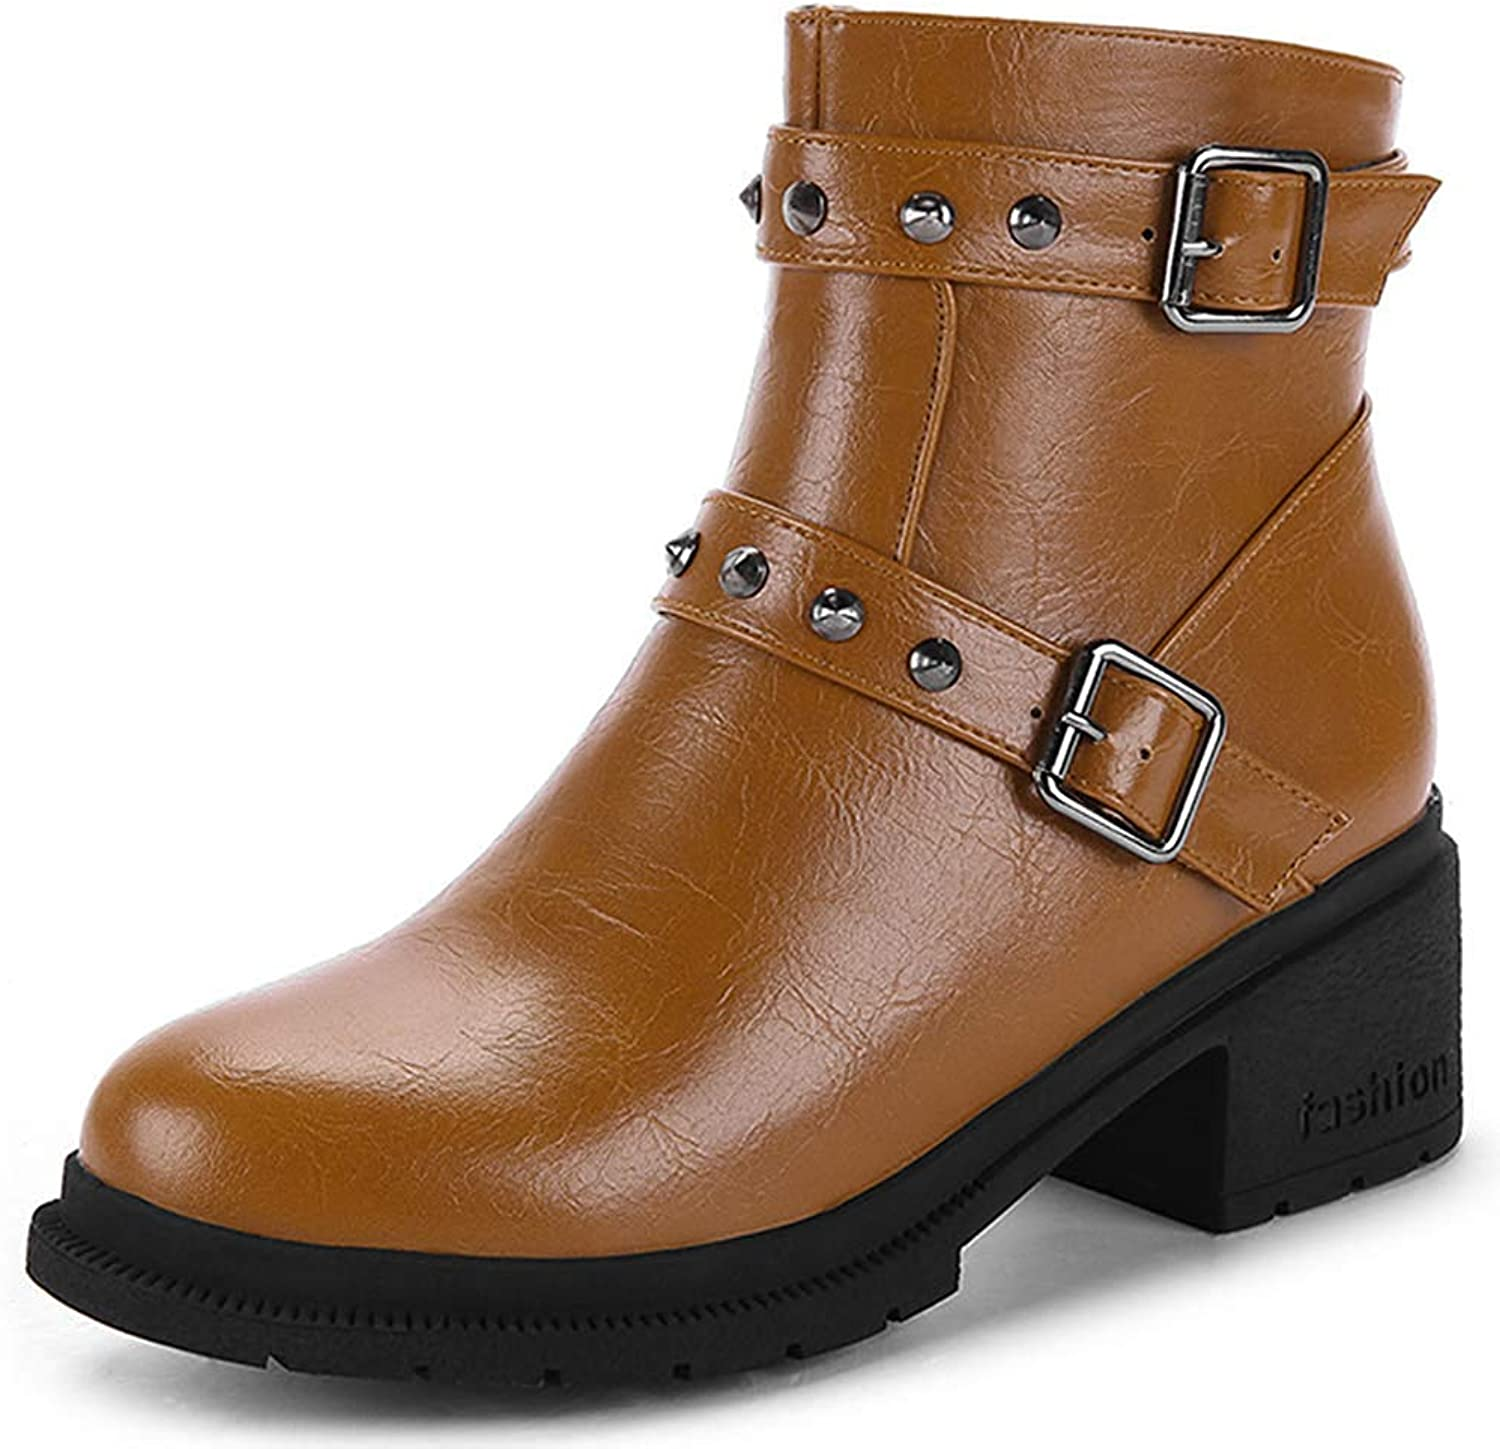 Gcanwea Women's Studded Short Boots Buckle Strap Round Toe Medium Block Heel Ankle Booties with Zipper Sexy No Grinding Feet Fashion Joker Dexterous Easy to Match Breathable Green 7 M US Ankle Boots